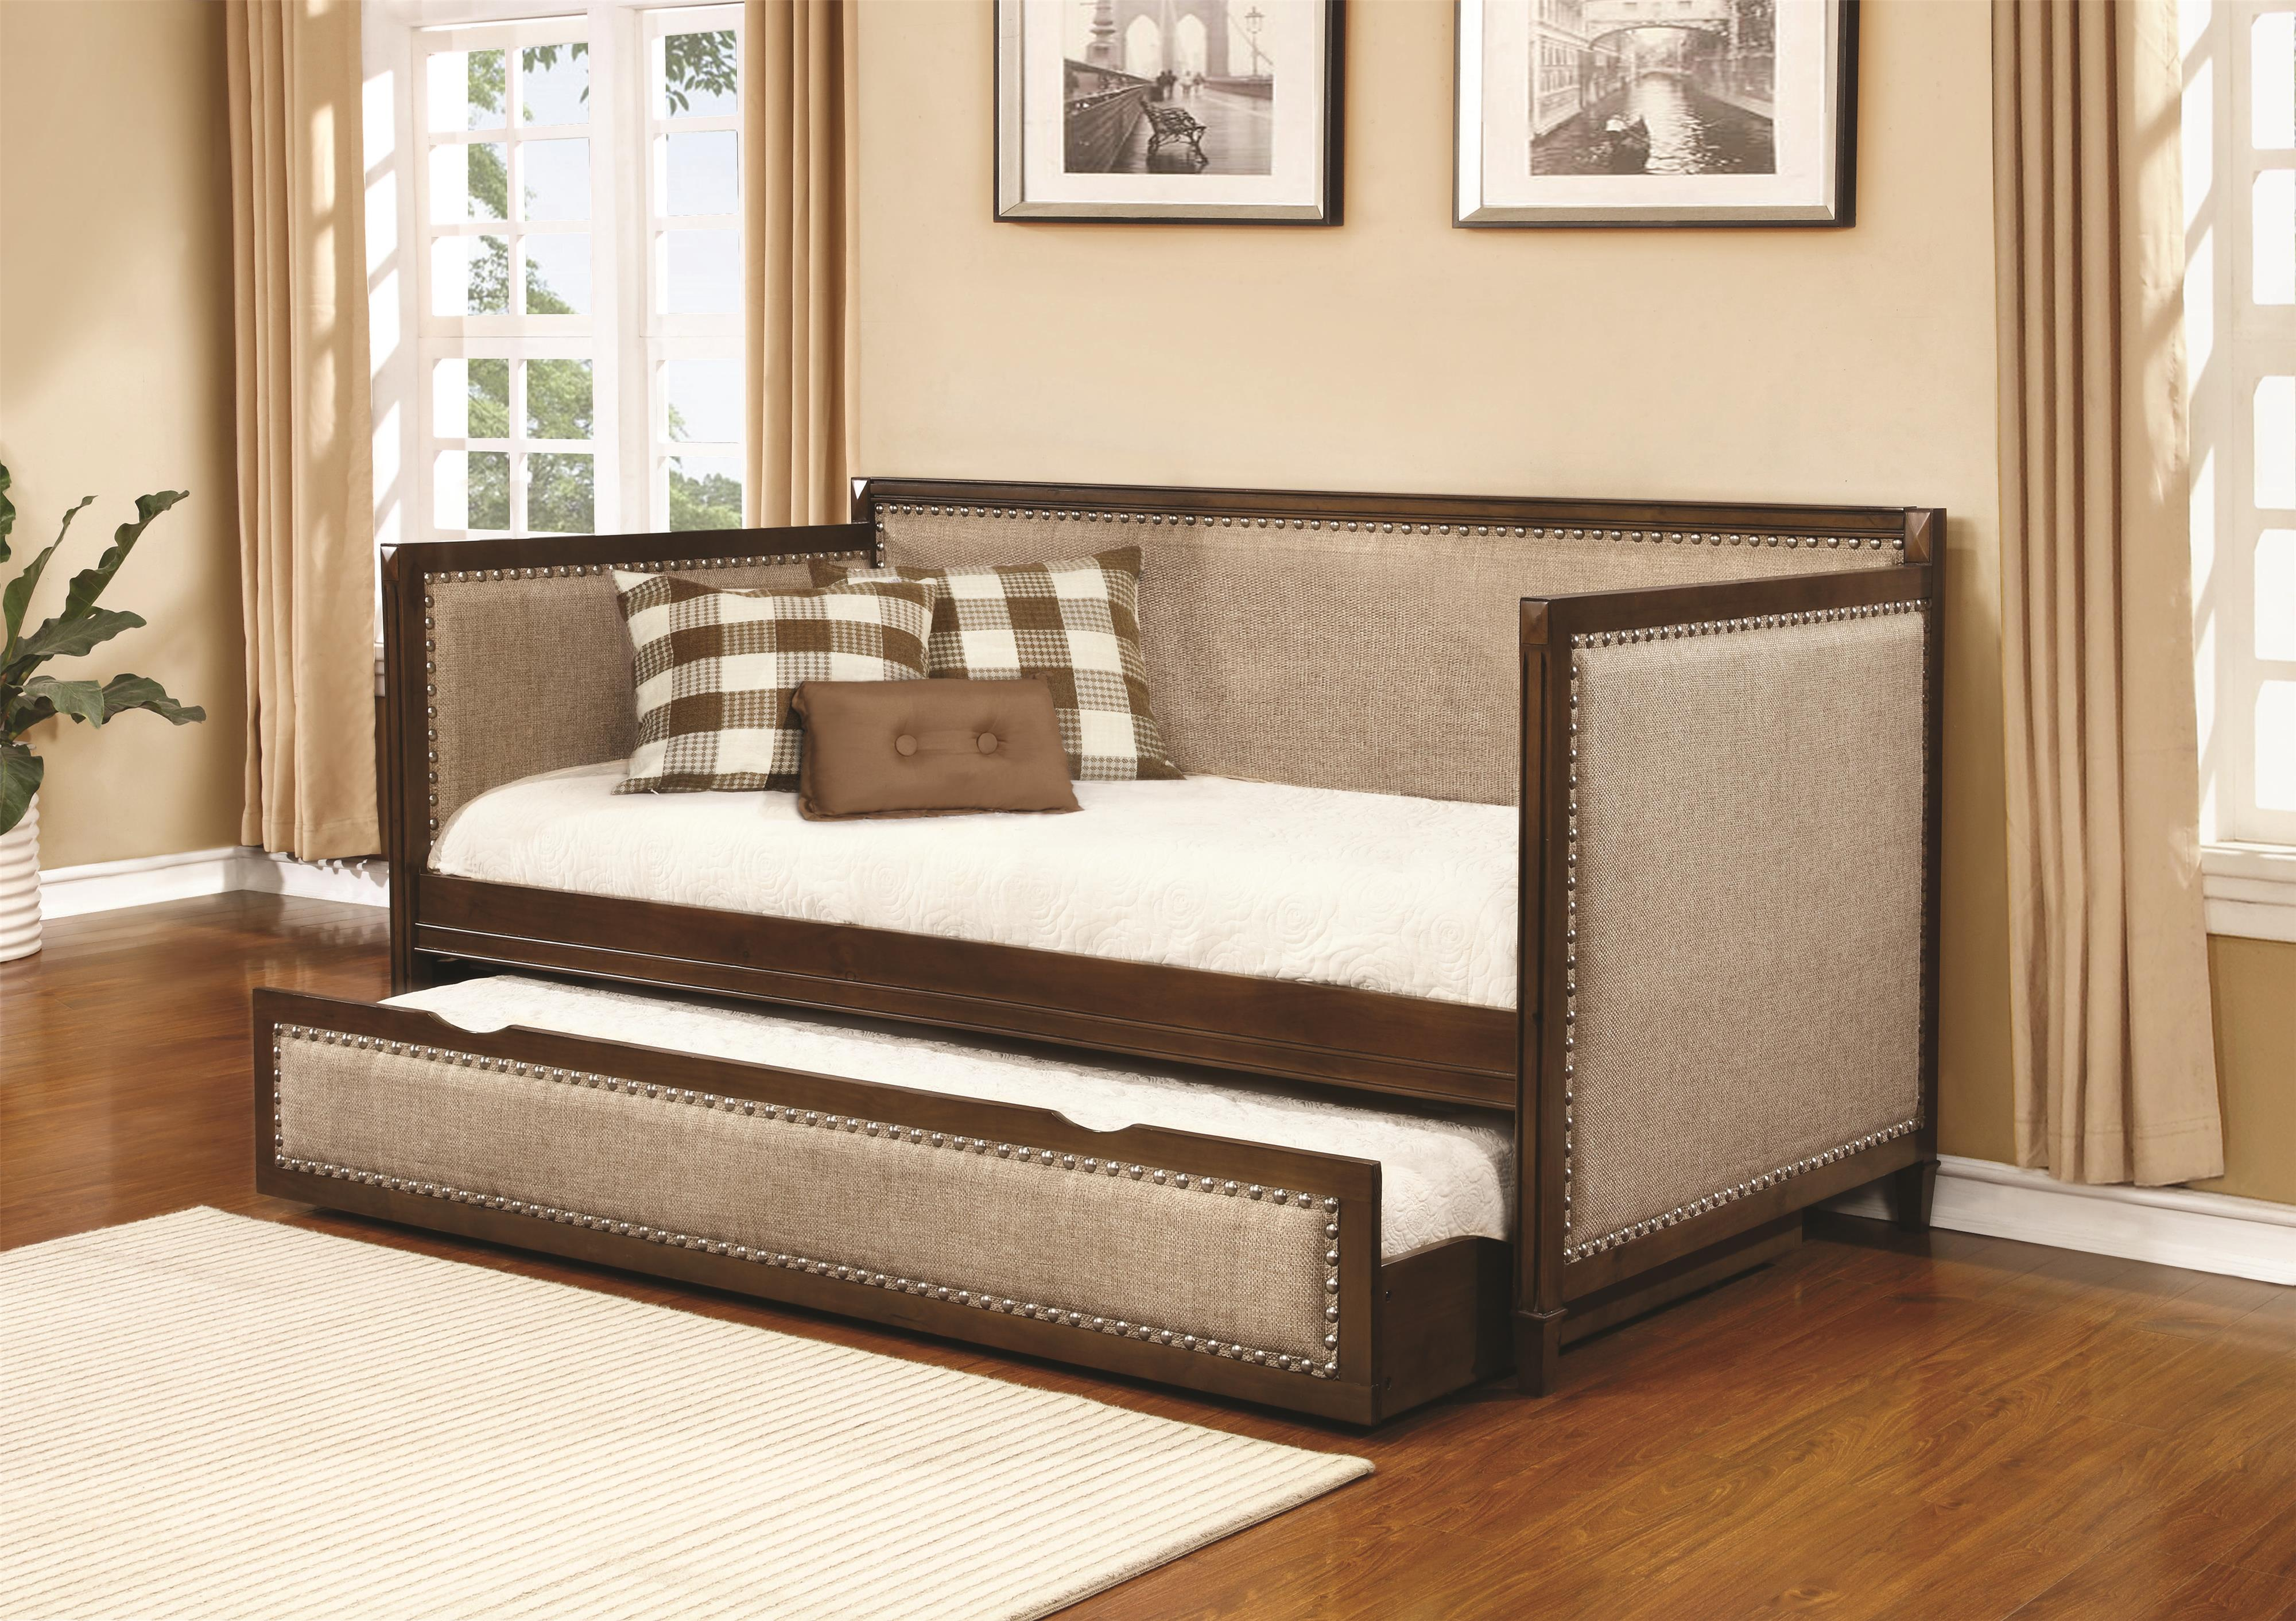 Daybed with Underbed Unit